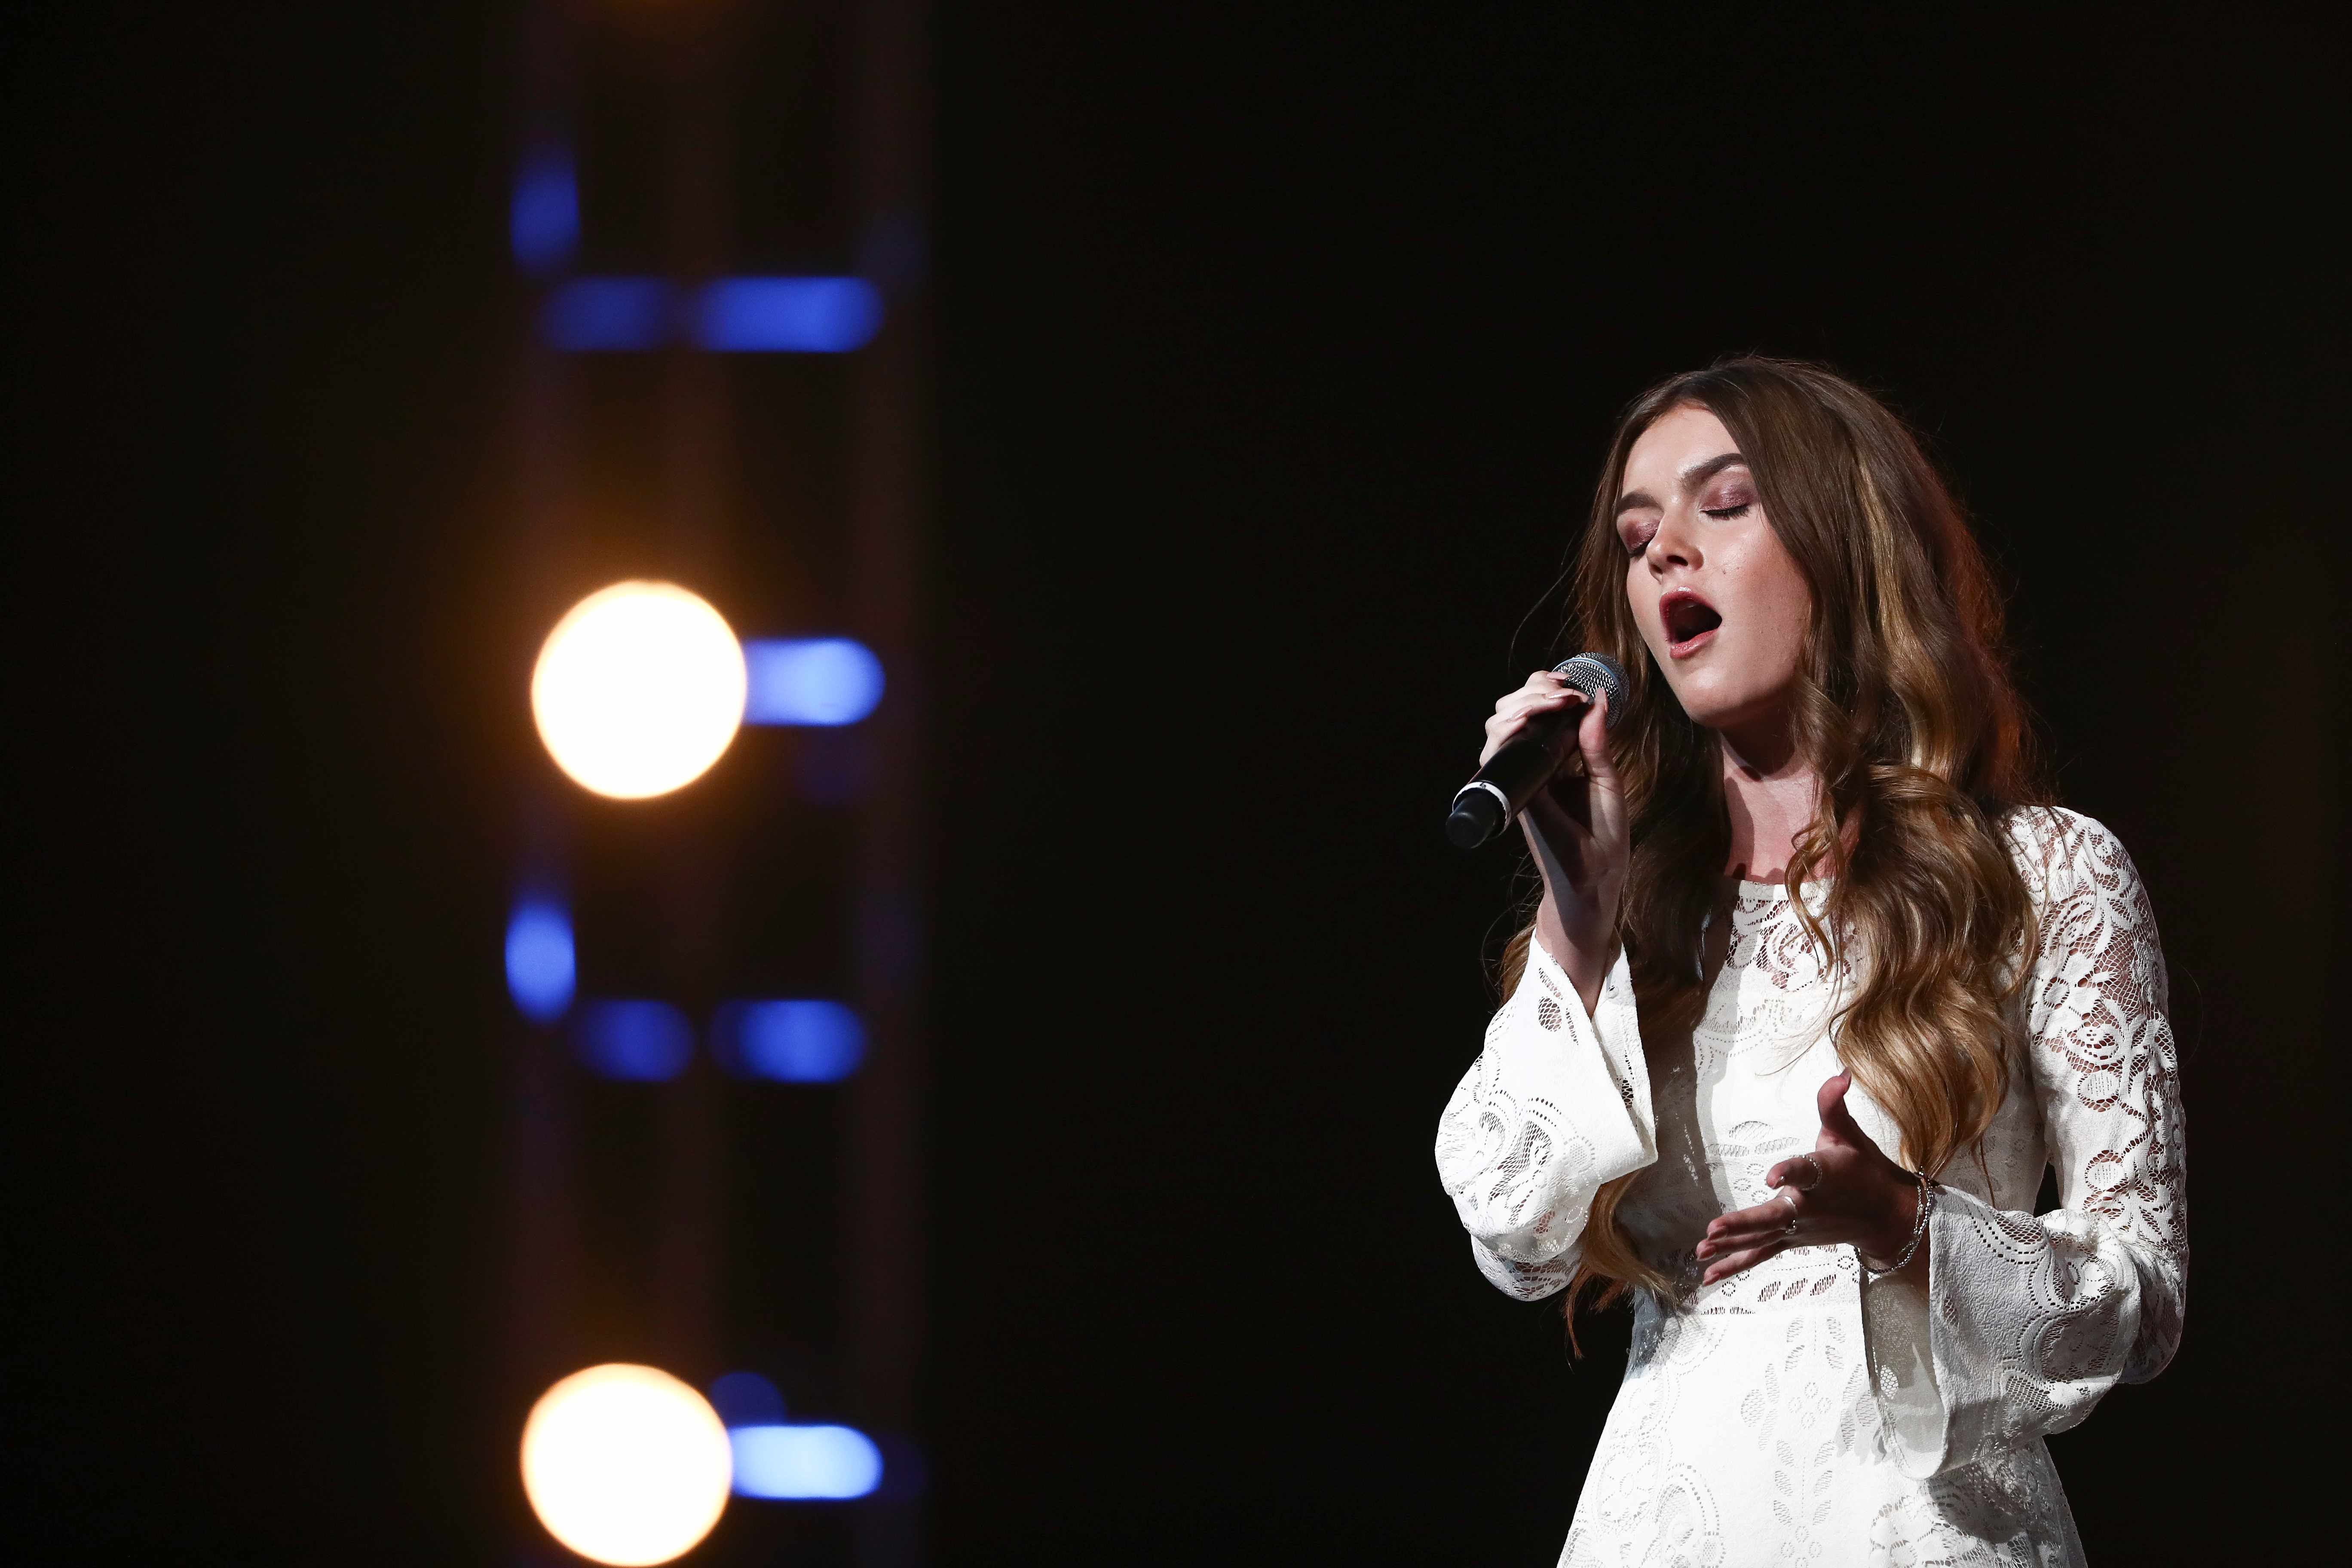 Holly Tandy X Factor 2017 (ITV Pictures, JG)